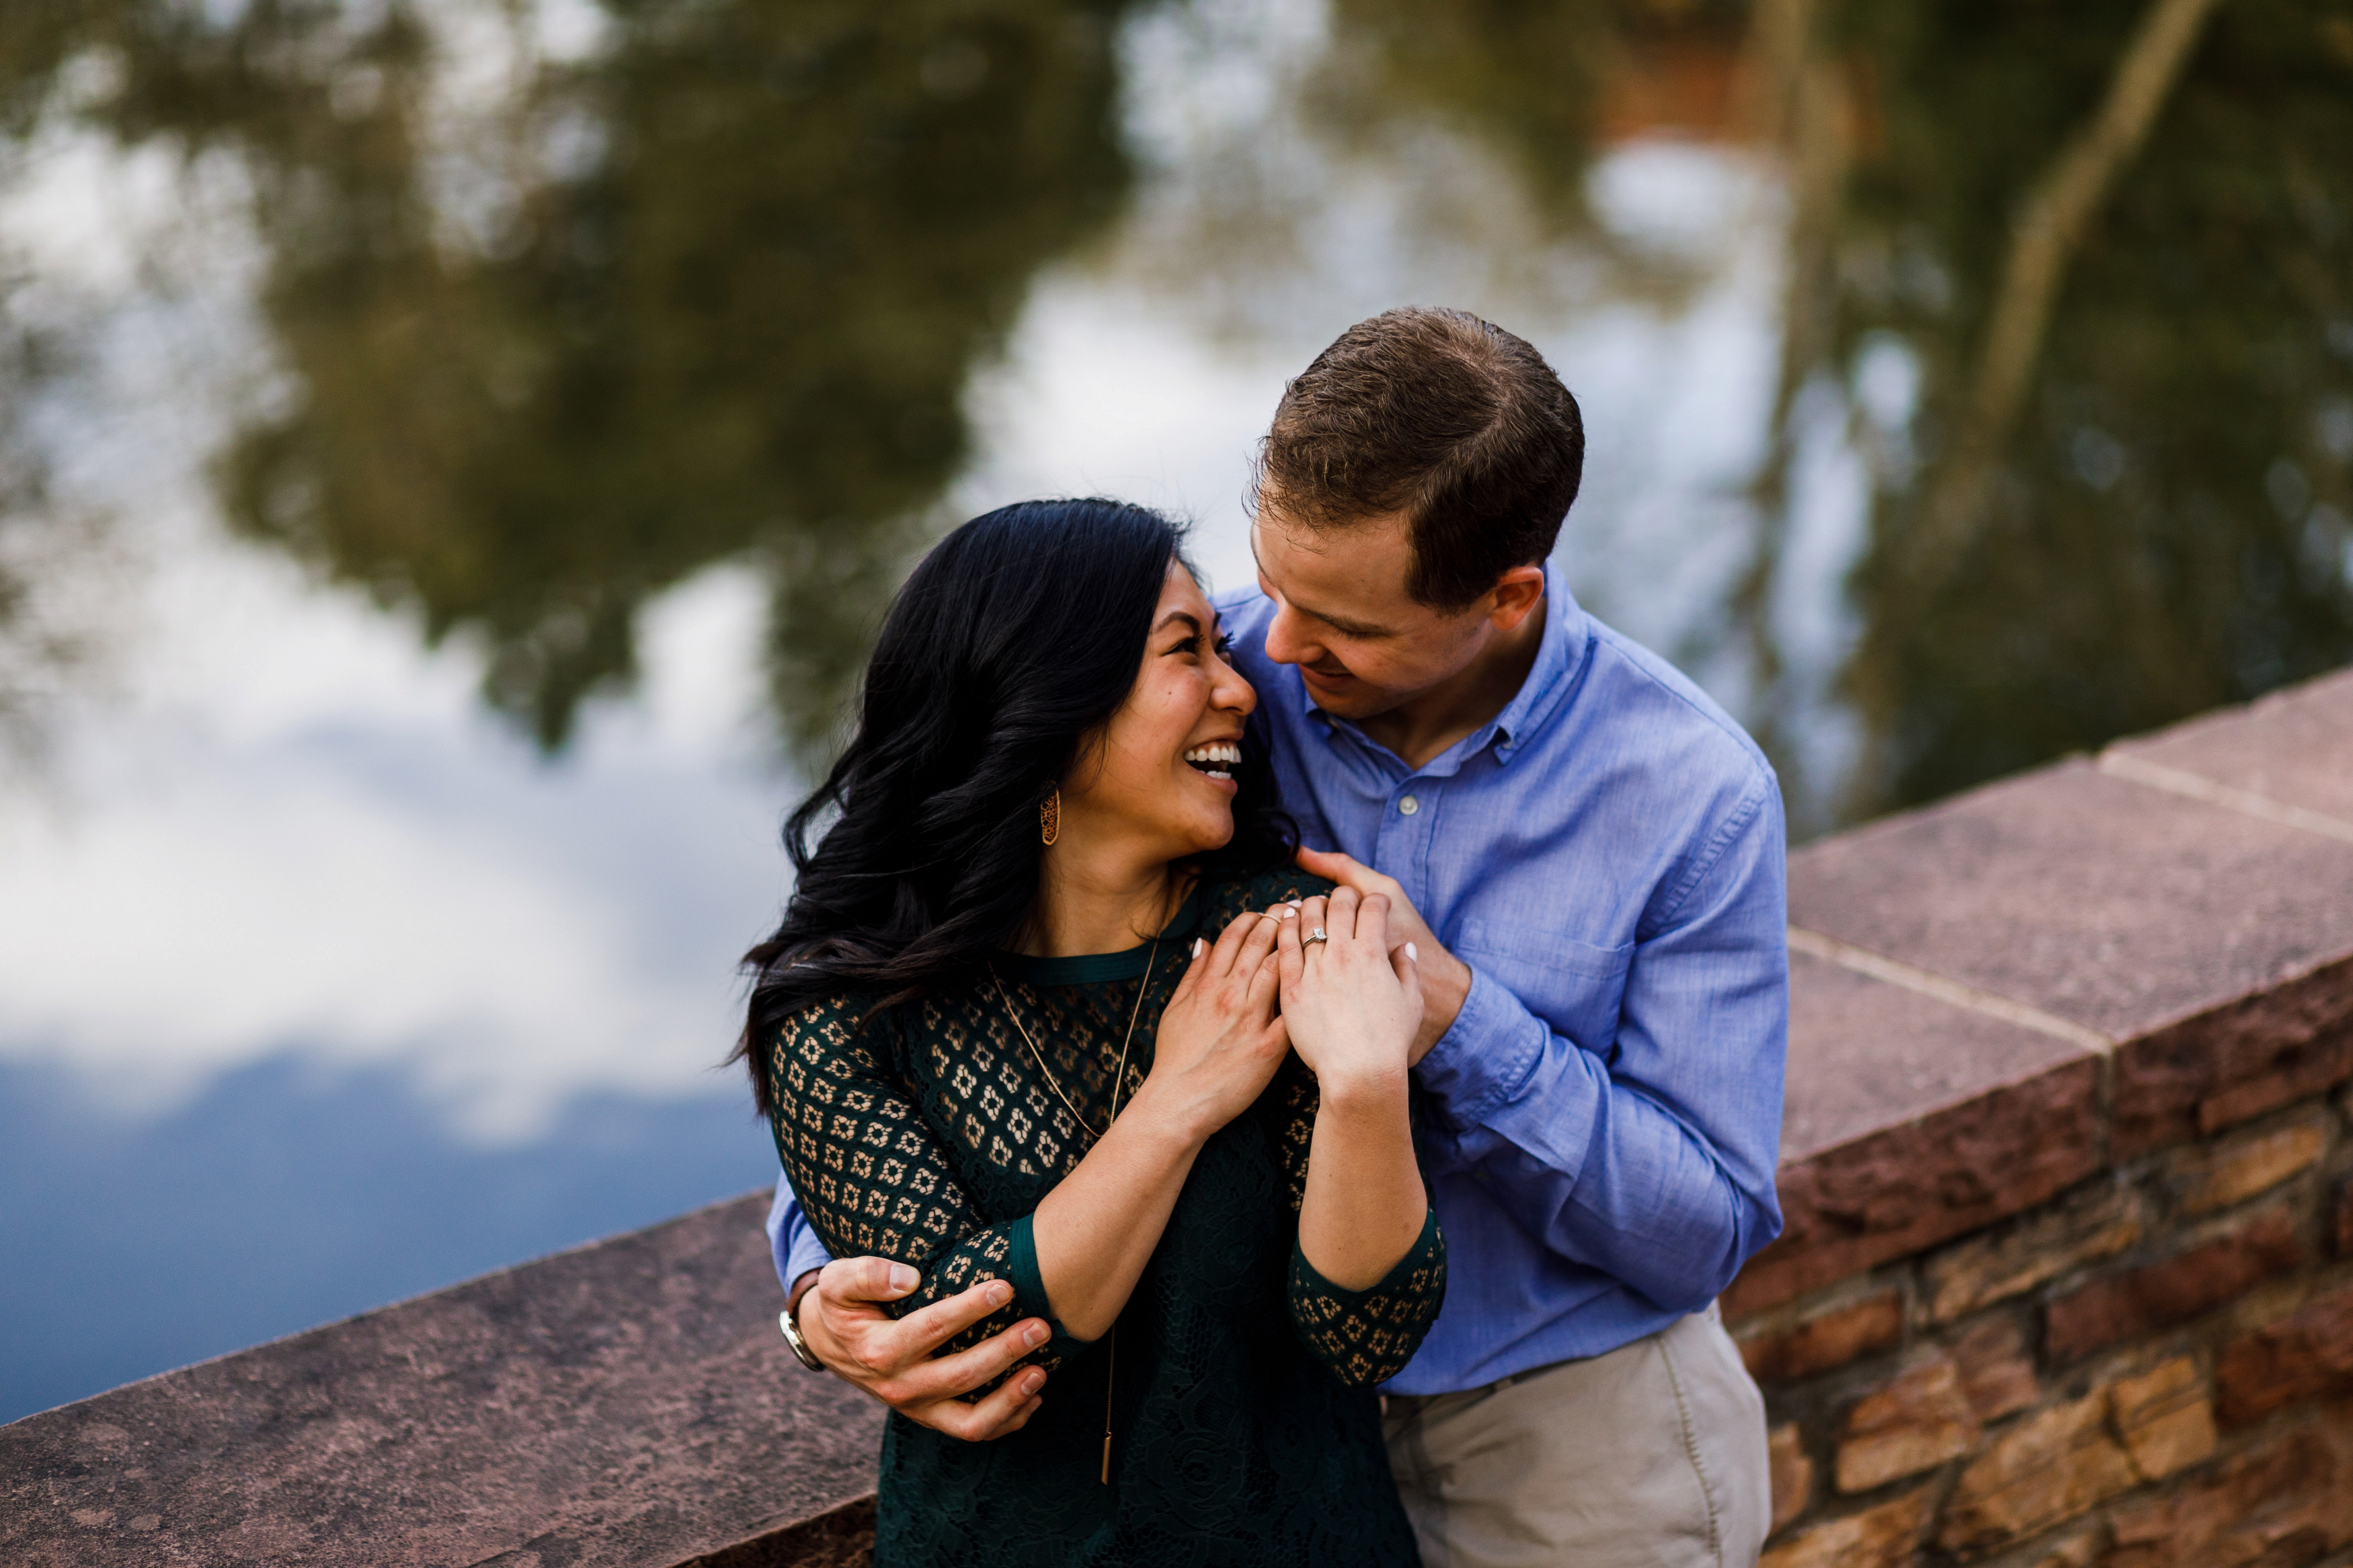 Varsity Lake engagement photo on CU Campus